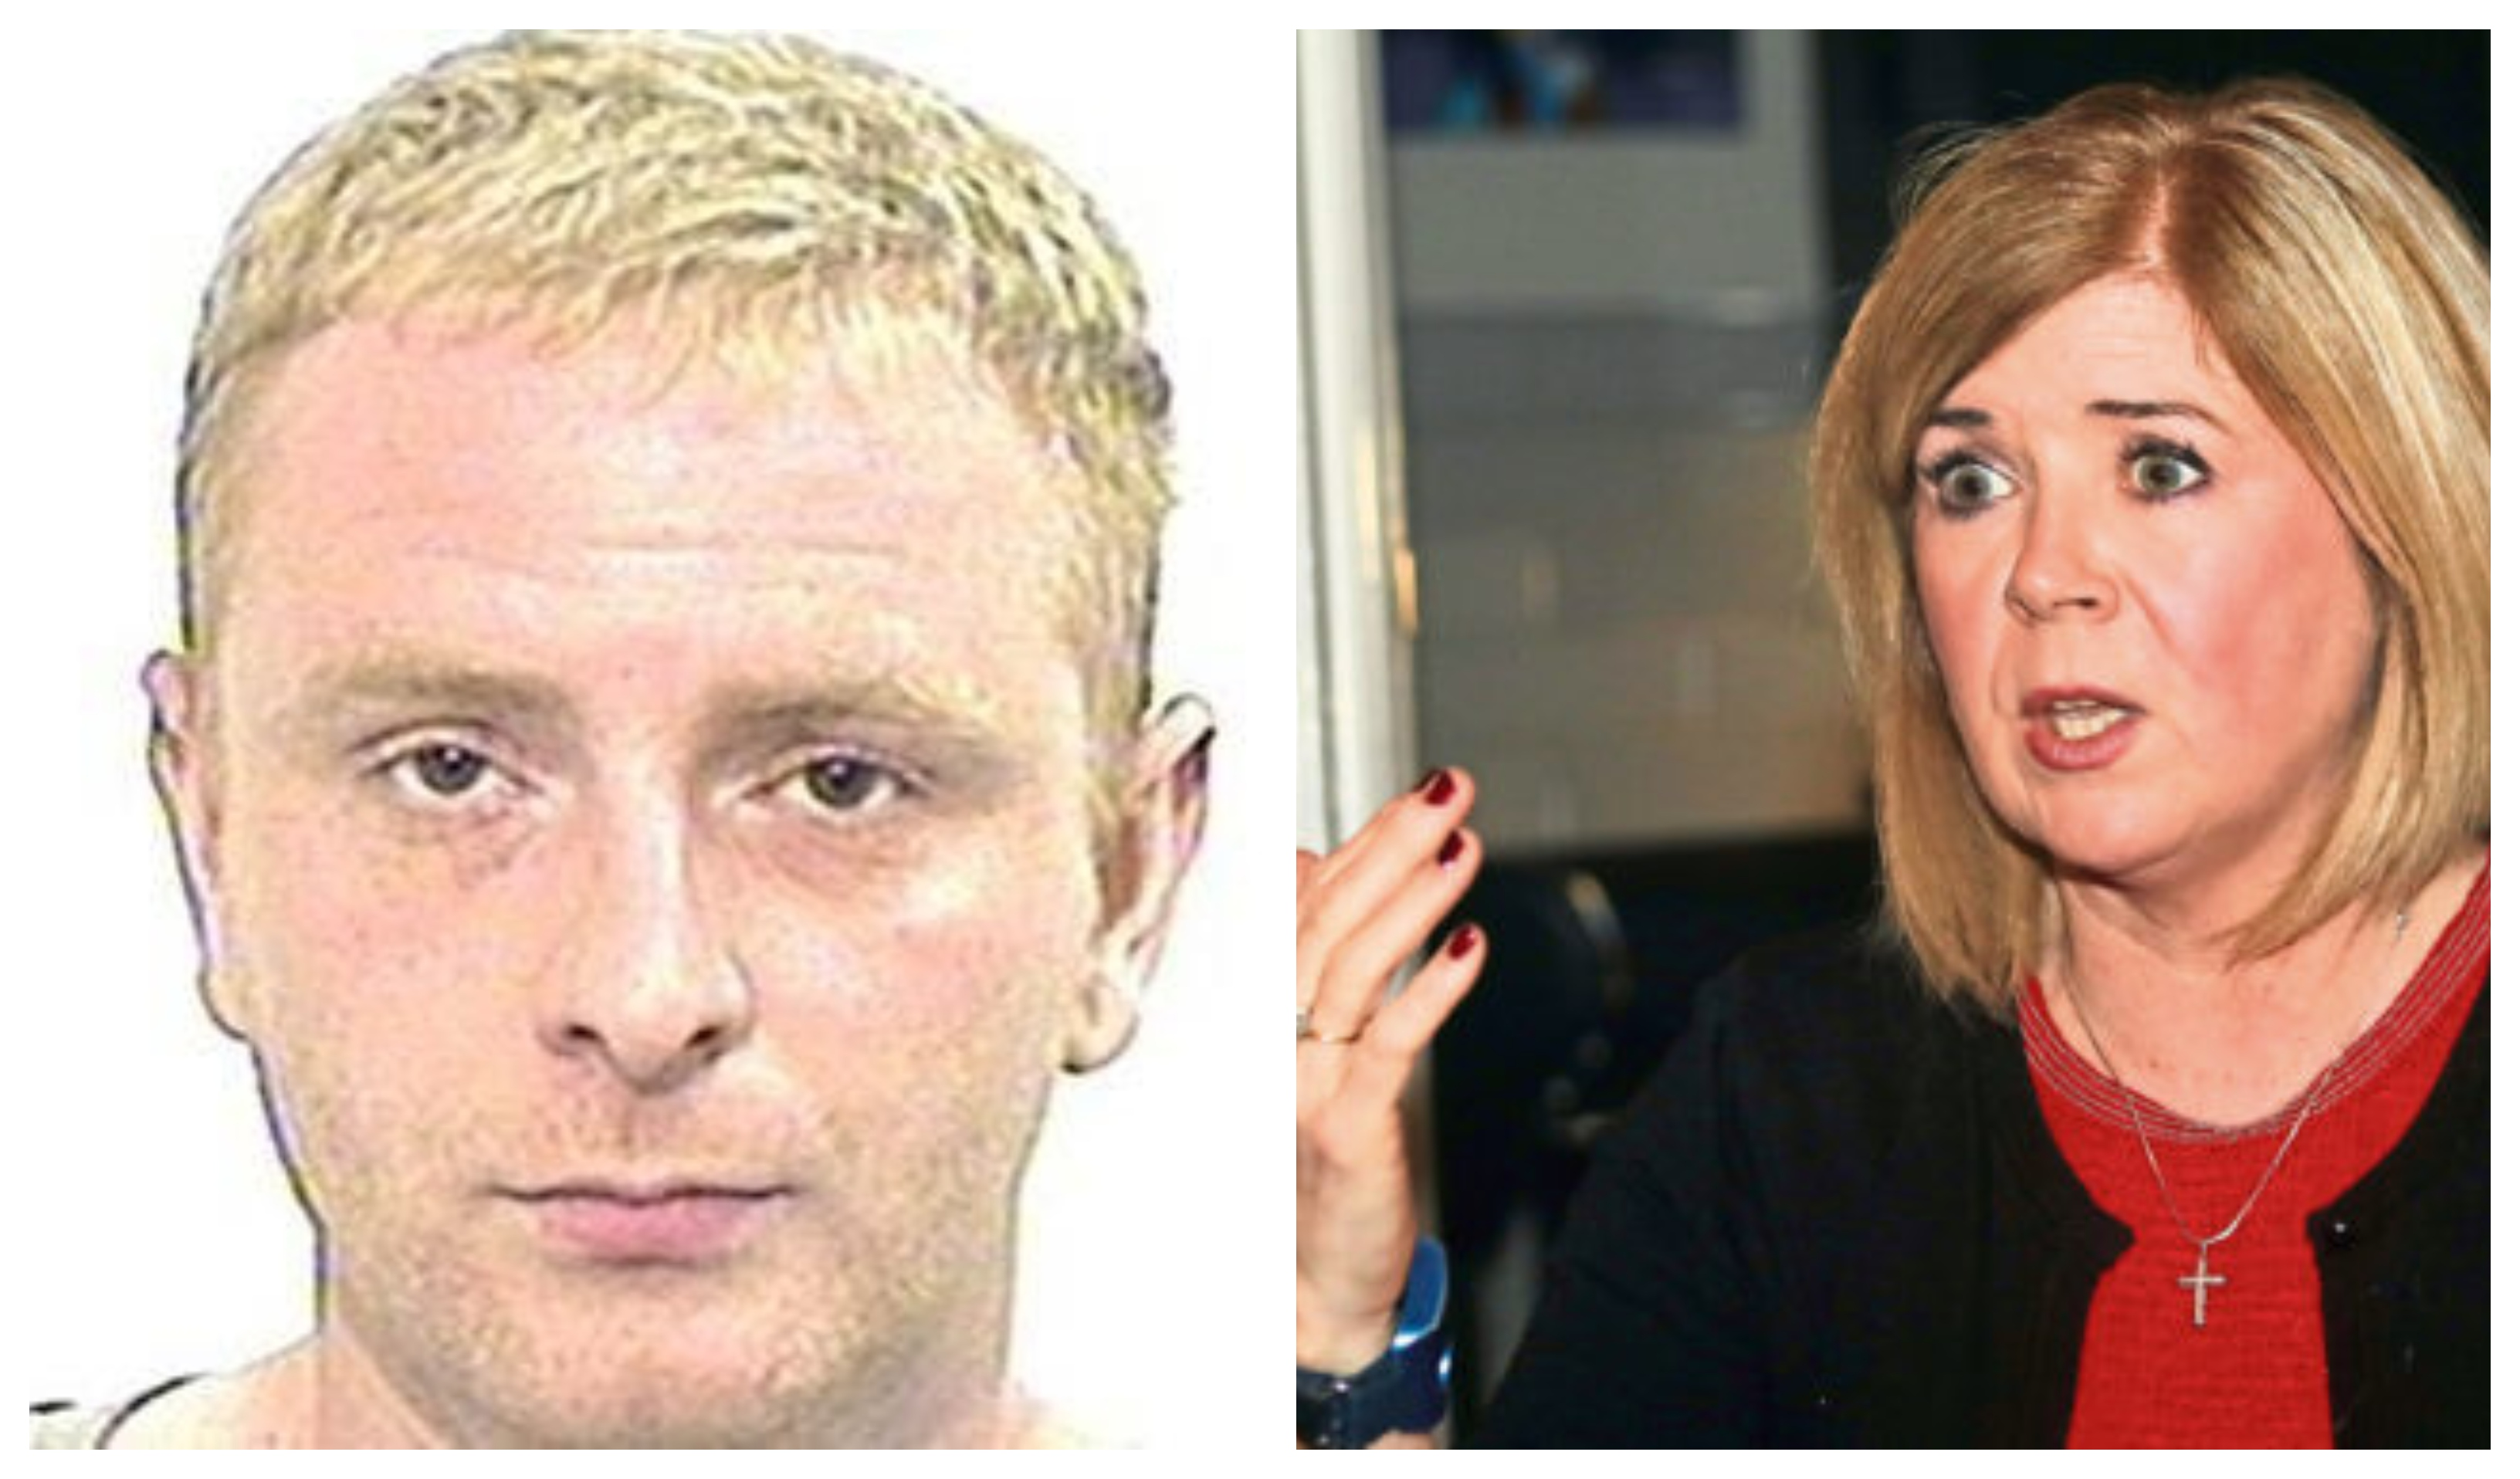 Robbie McIntosh attacked Linda McDonald, leaving her for dead.